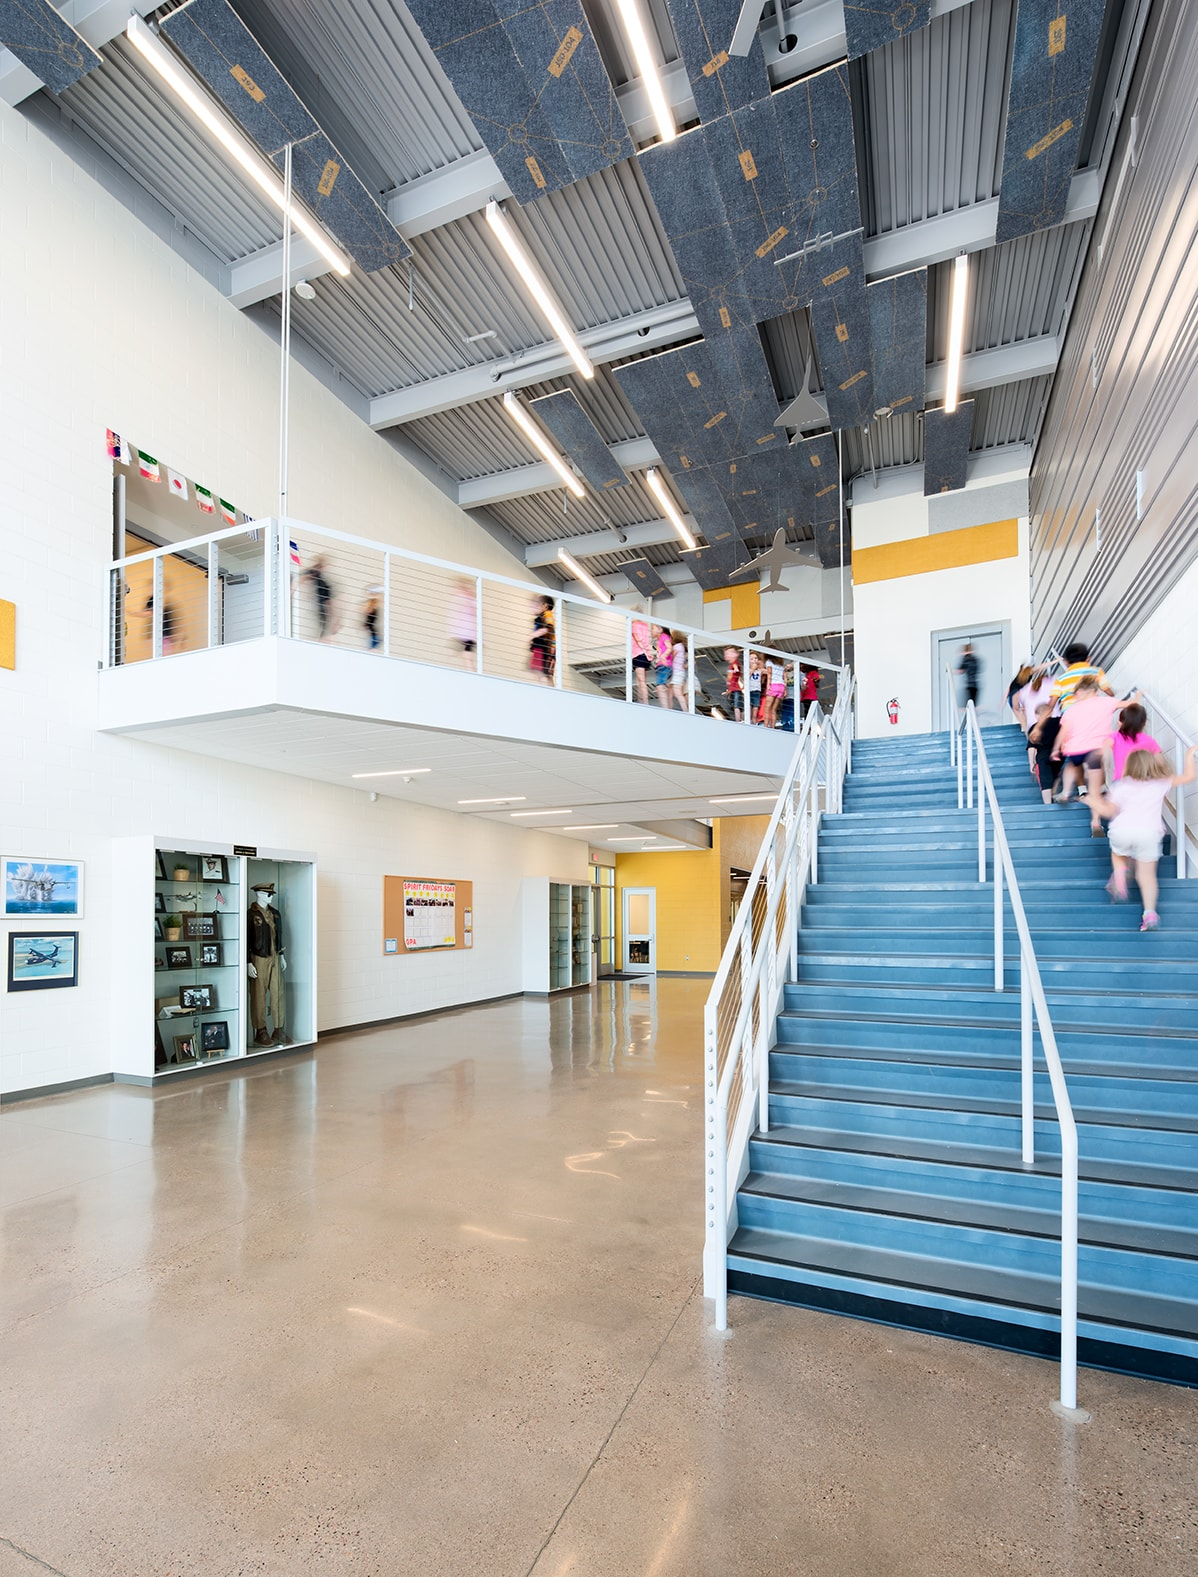 Entering the school atrium, replicated flight patterns tessellate on custom printed ceiling tiles with scale model planes suspended from the ceiling. Each model plane represents a milestone in aviation history moving from early flight to modern-day flight through the space.